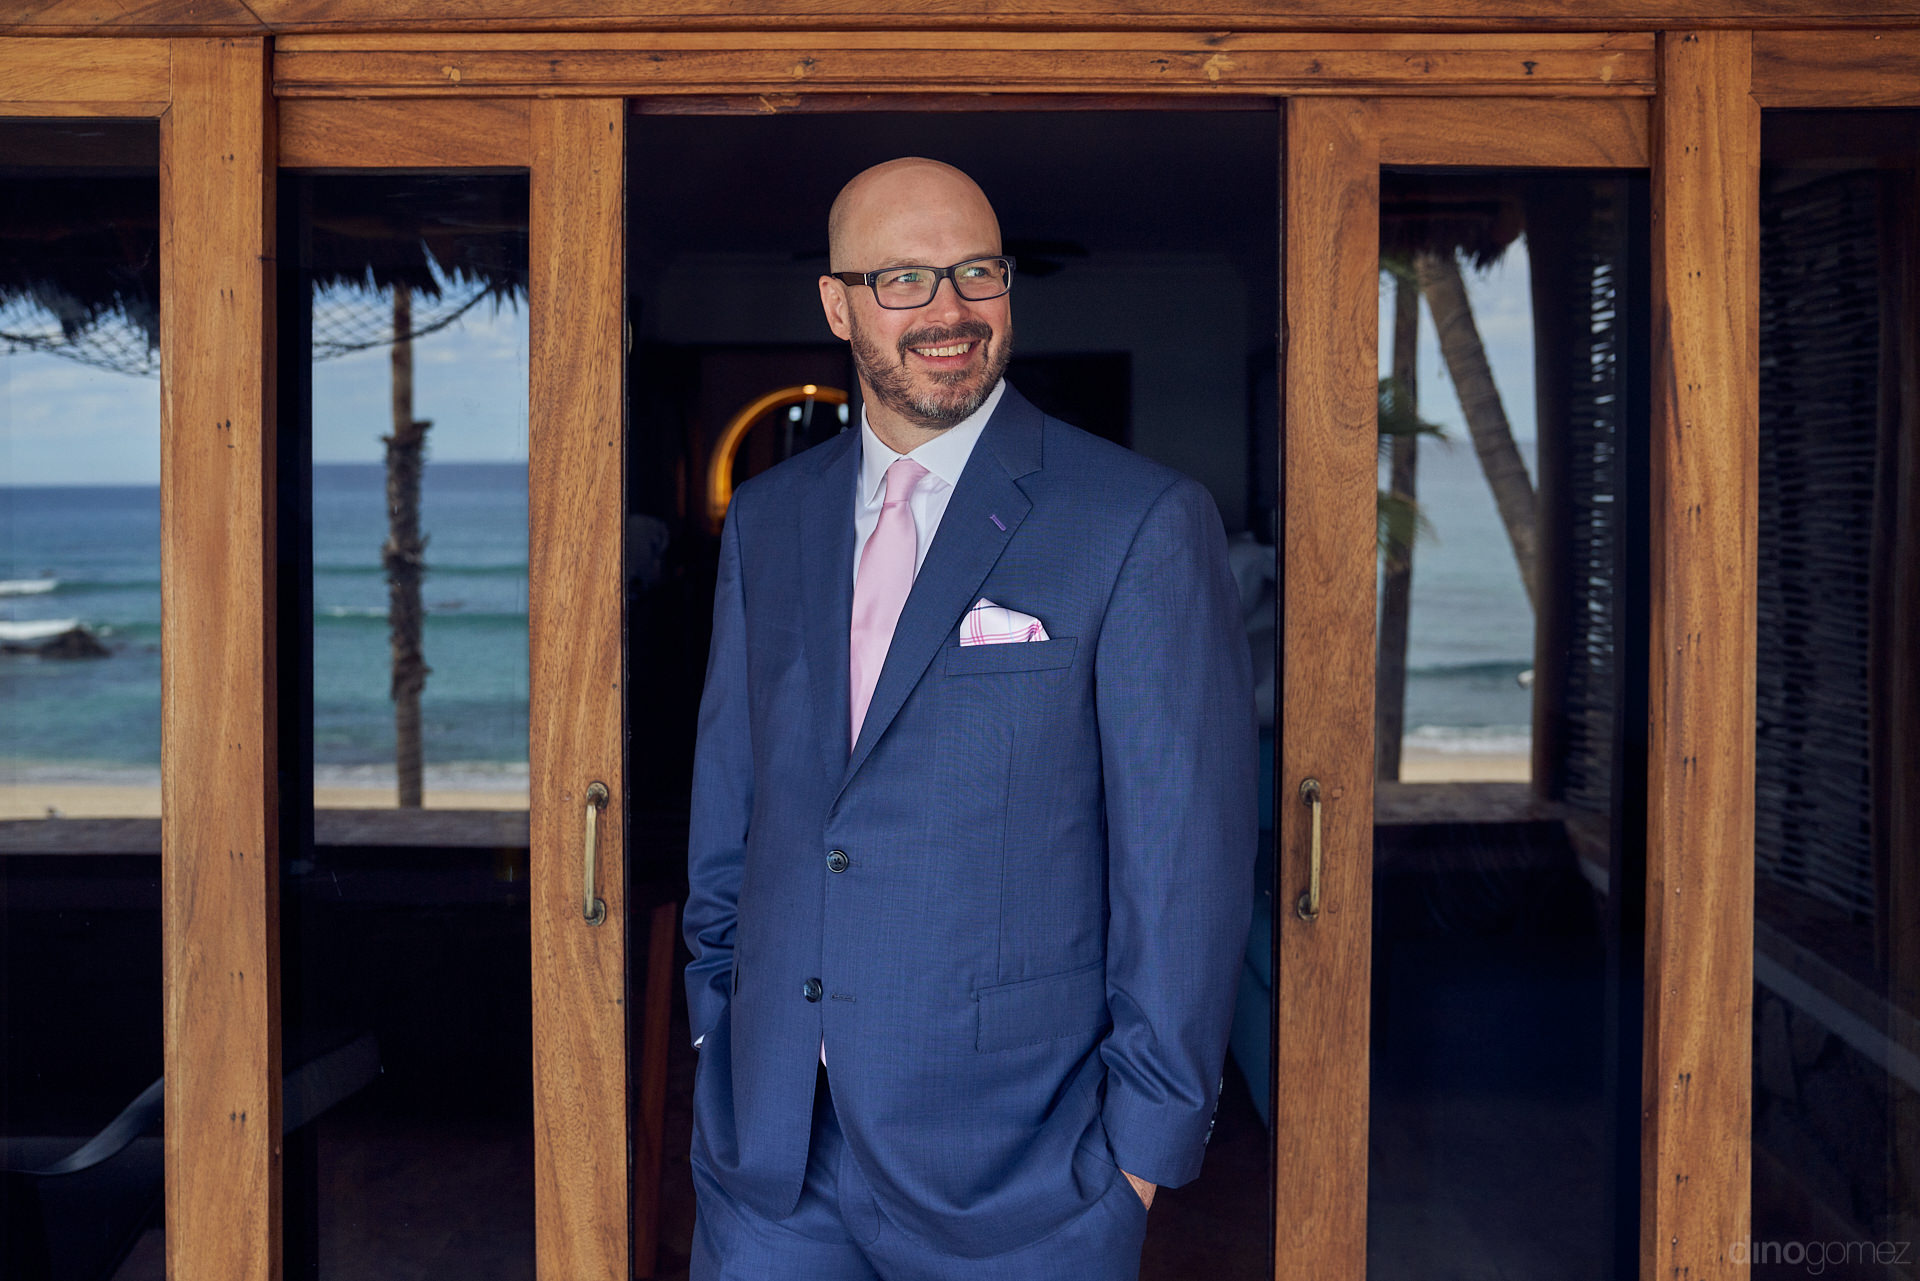 Los Cabos Wedding Venues In Beautiful And Timeless Photographs - Mm